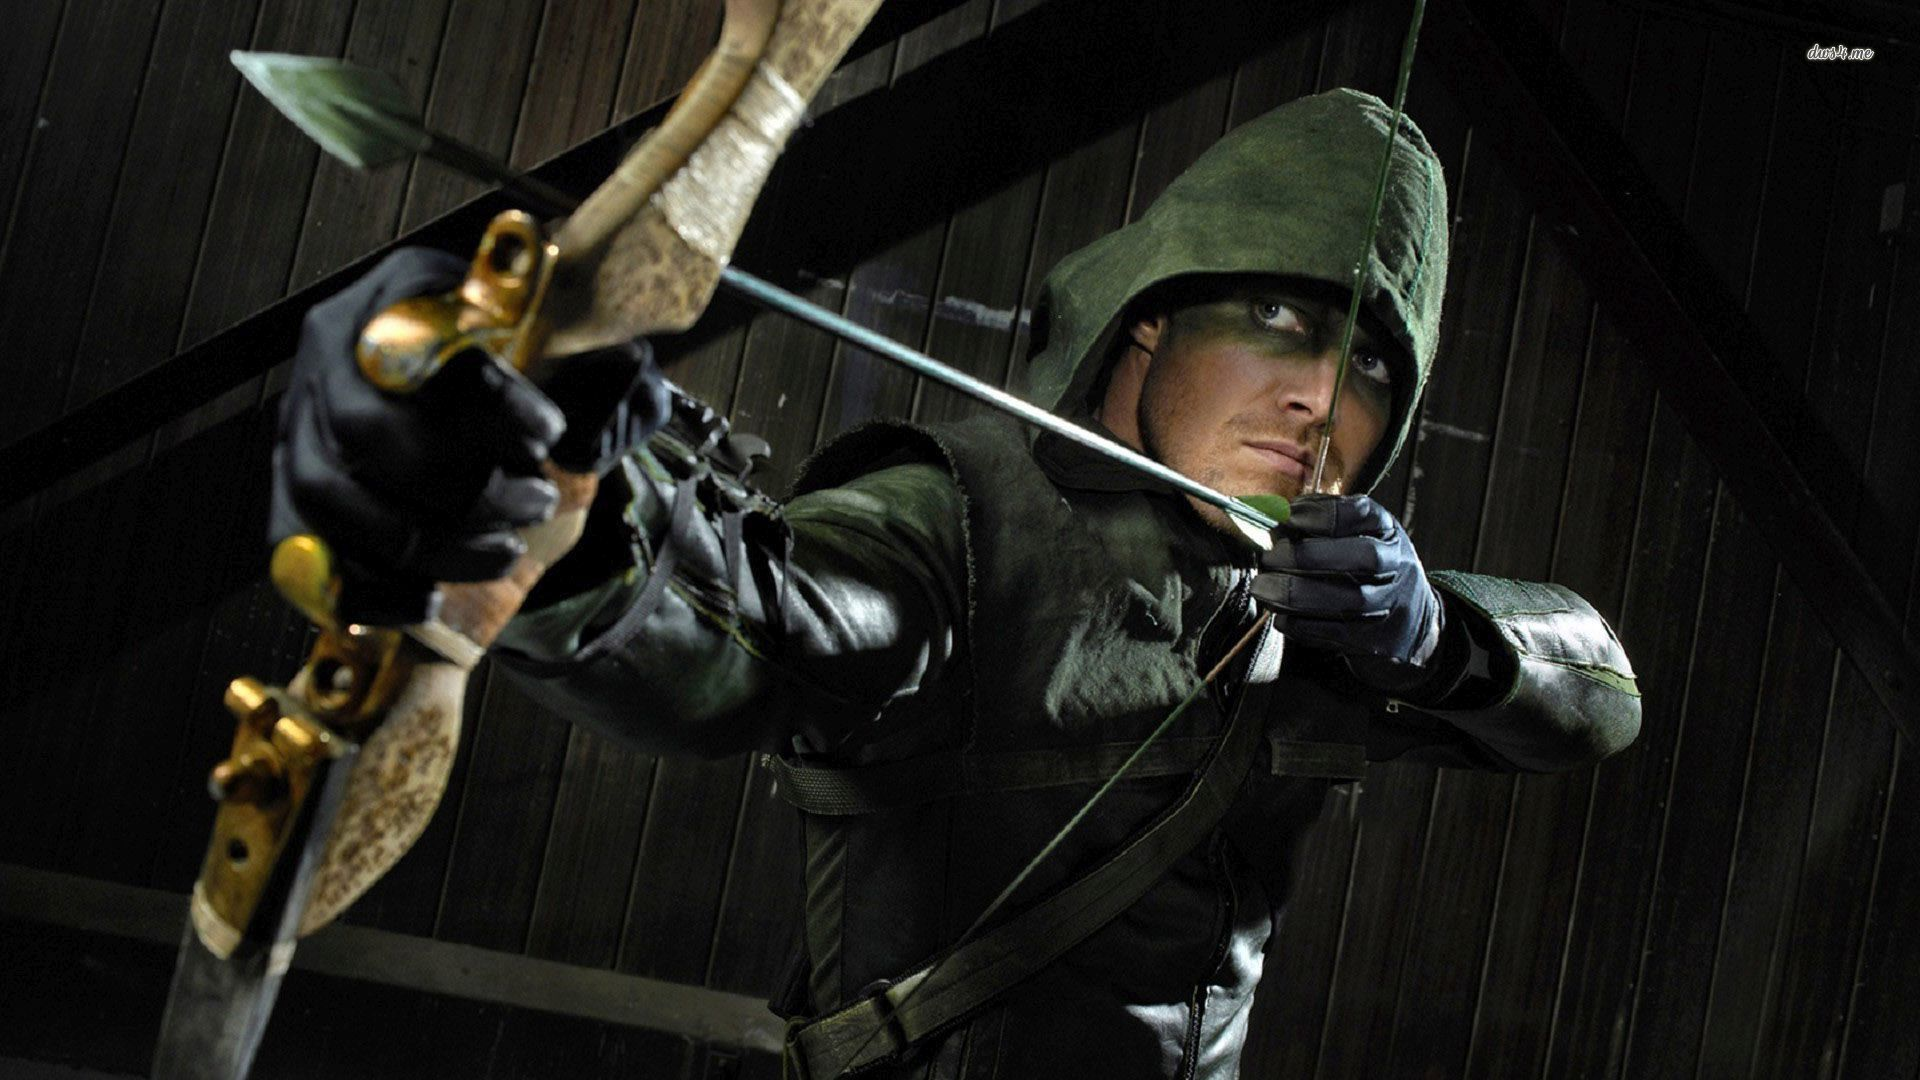 Stephen amell says green arrow will be f mean next season stephen amell says green arrow will be f mean next season voltagebd